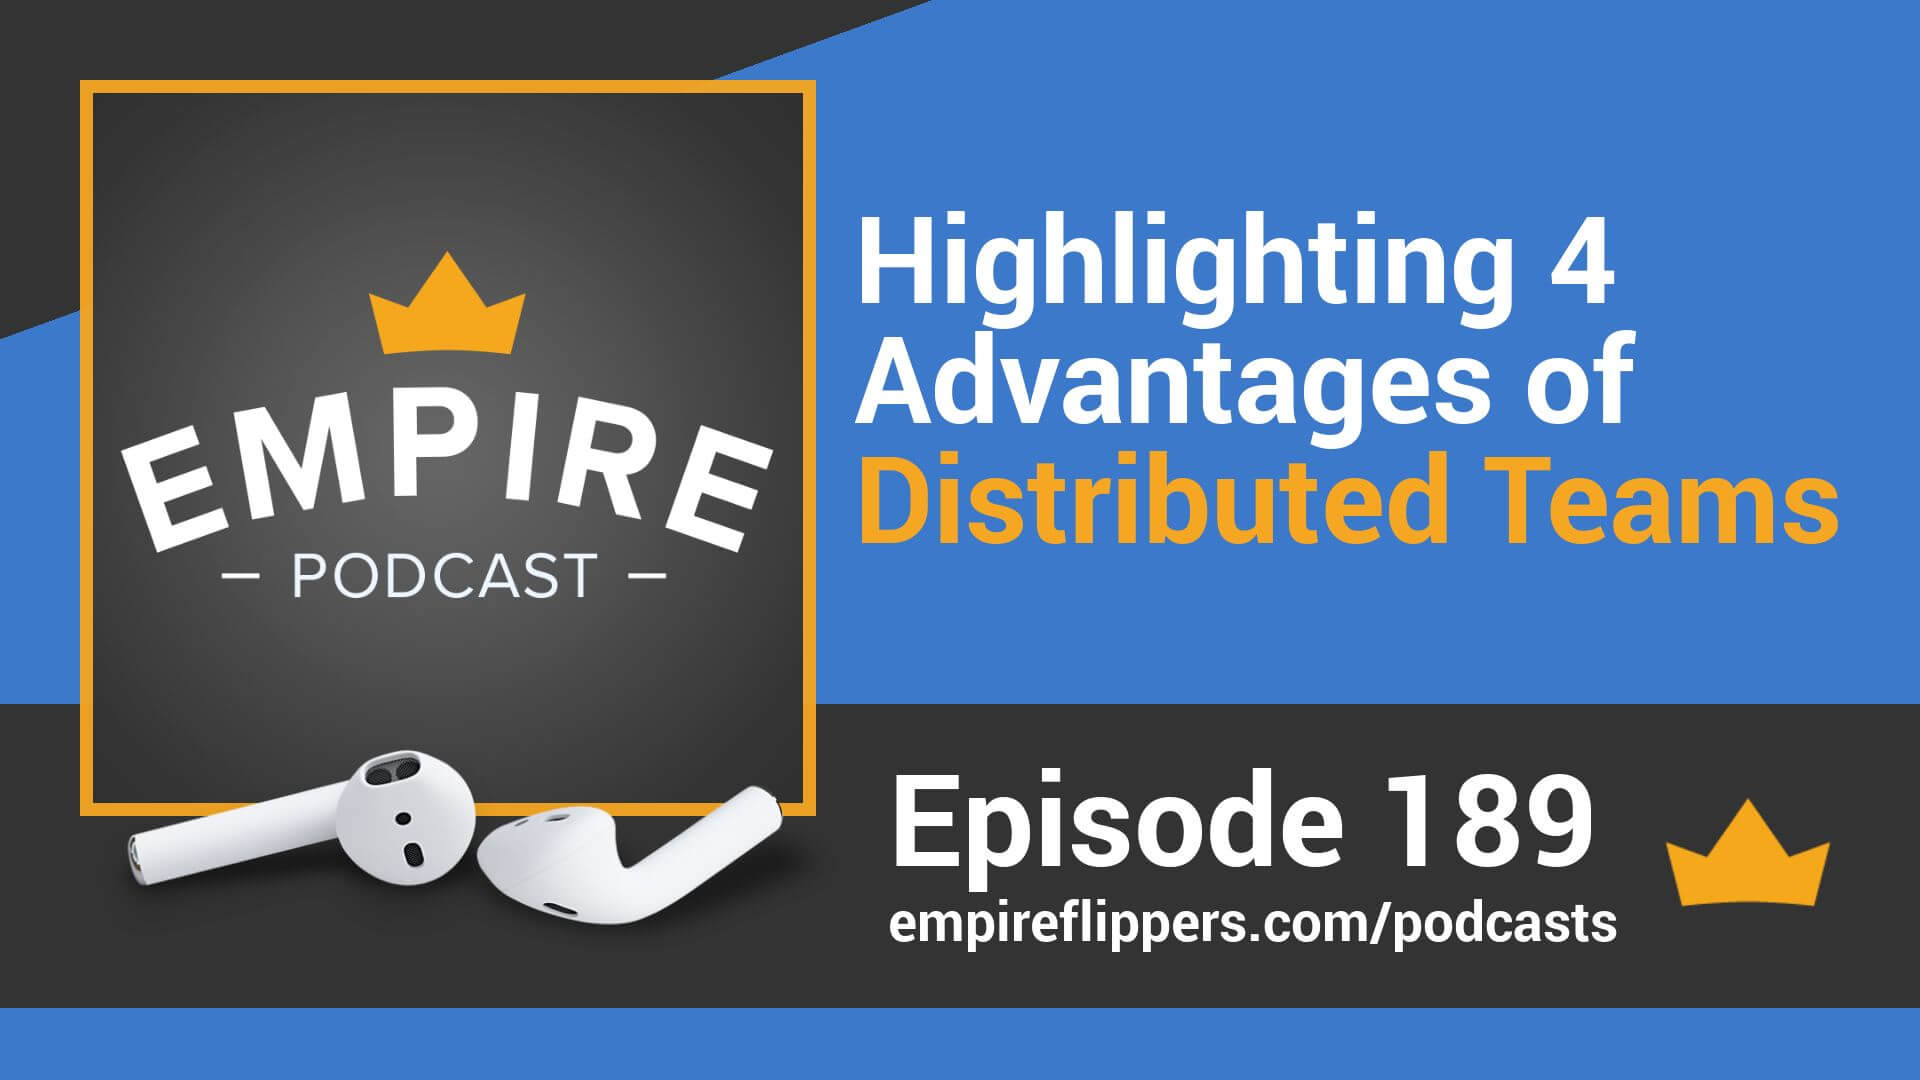 EFP 189 - Highlighting 4 Advantages of Distributed Teams